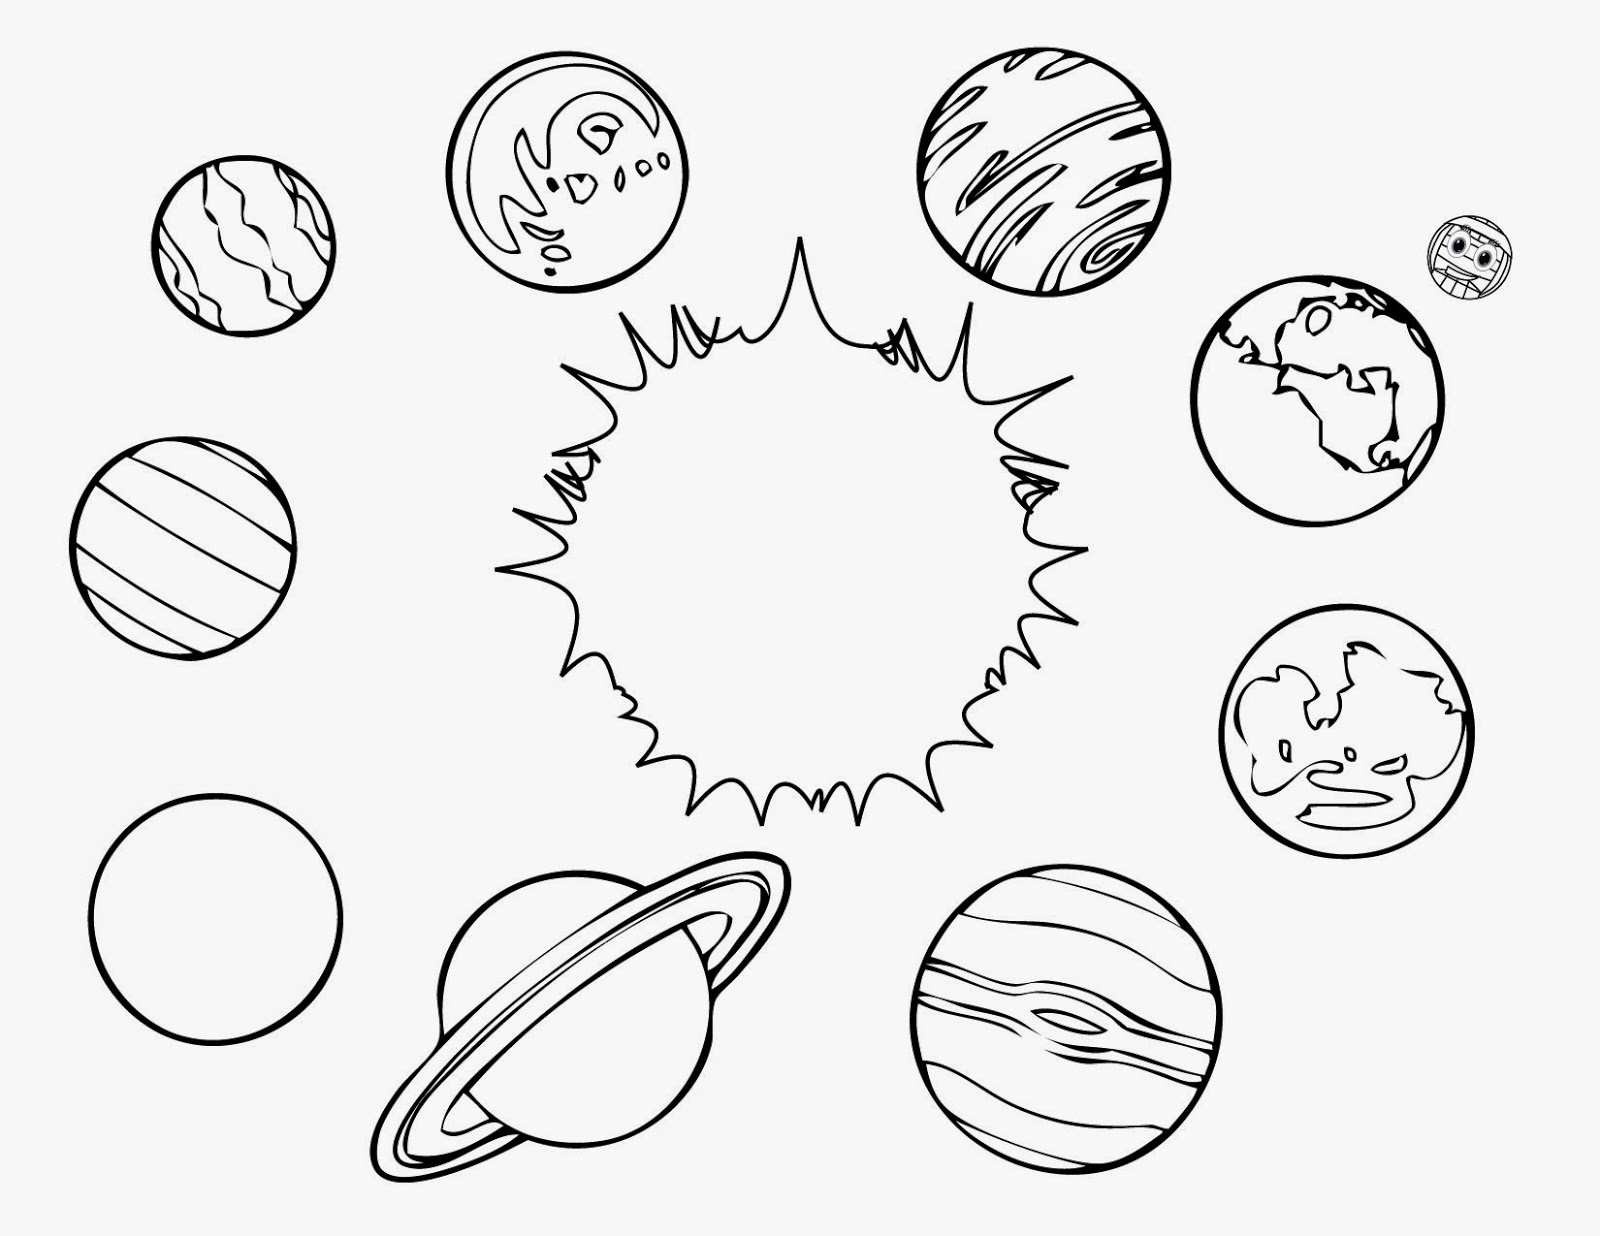 Drawn planets kid For free and for coloring